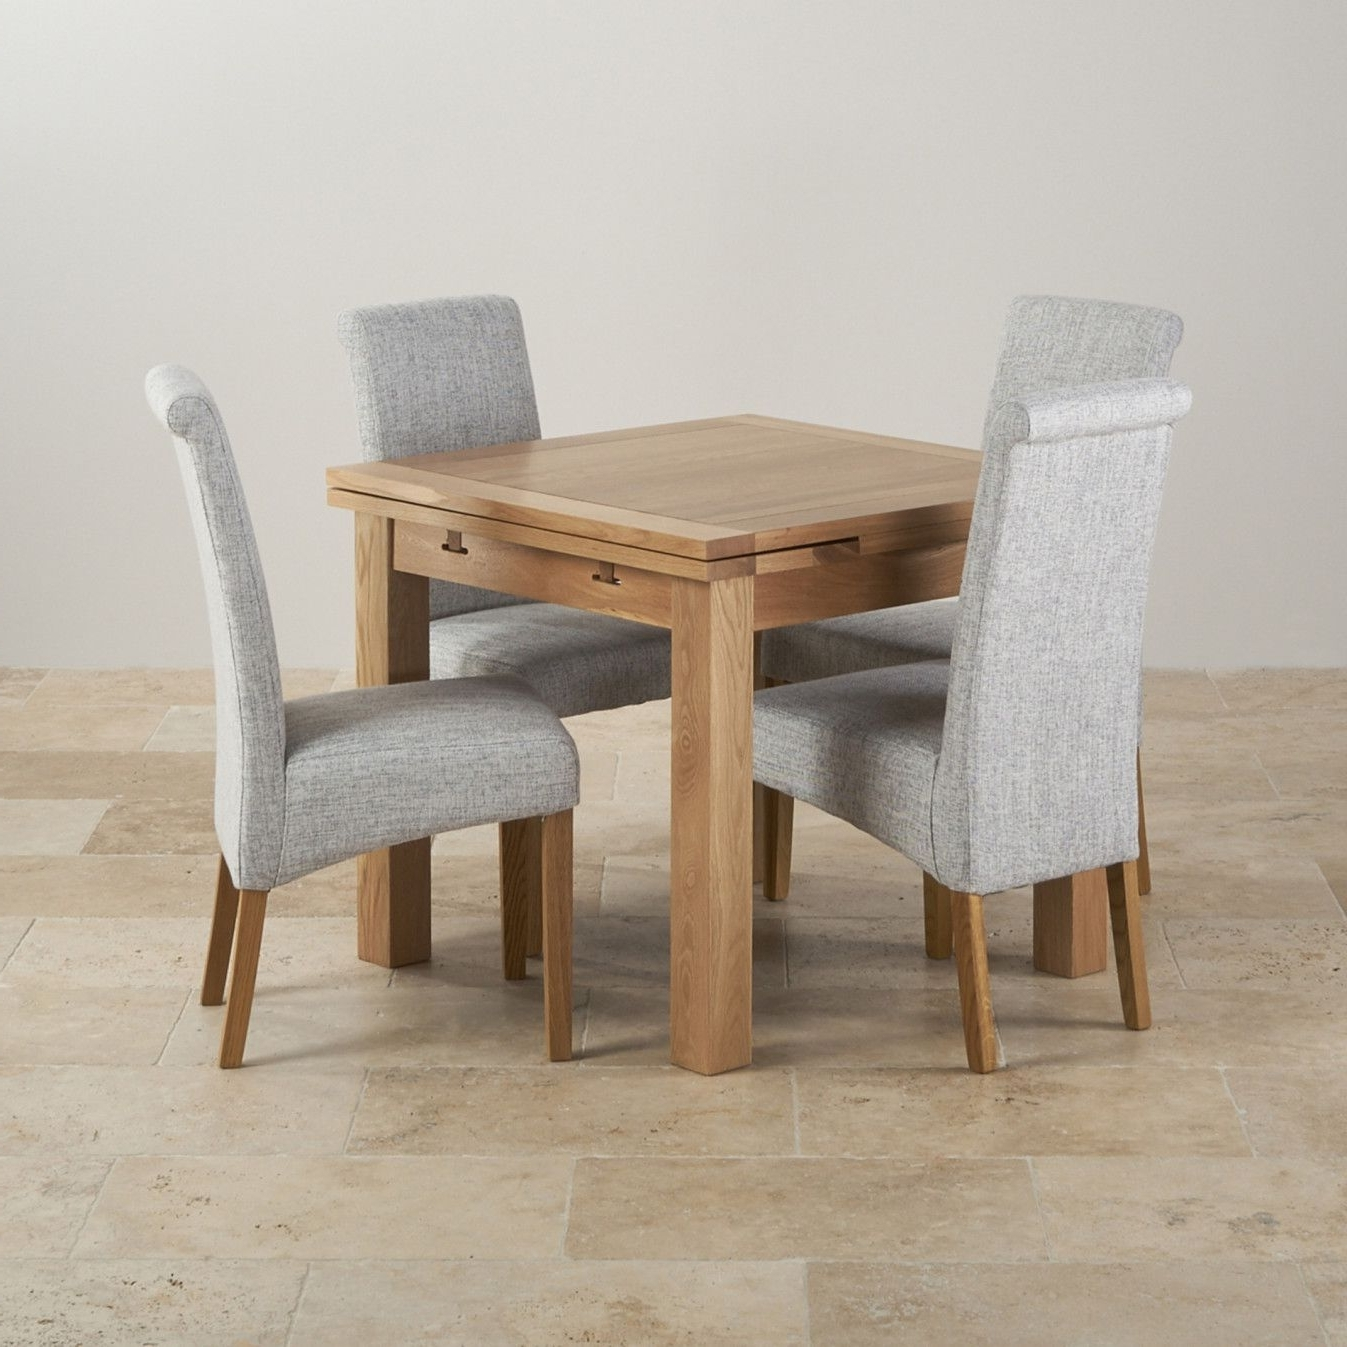 Extending Oak Dining Tables And Chairs Intended For Latest 2018 Extending Oak Dining Table And Chairs – Rustic Modern Furniture (View 2 of 25)